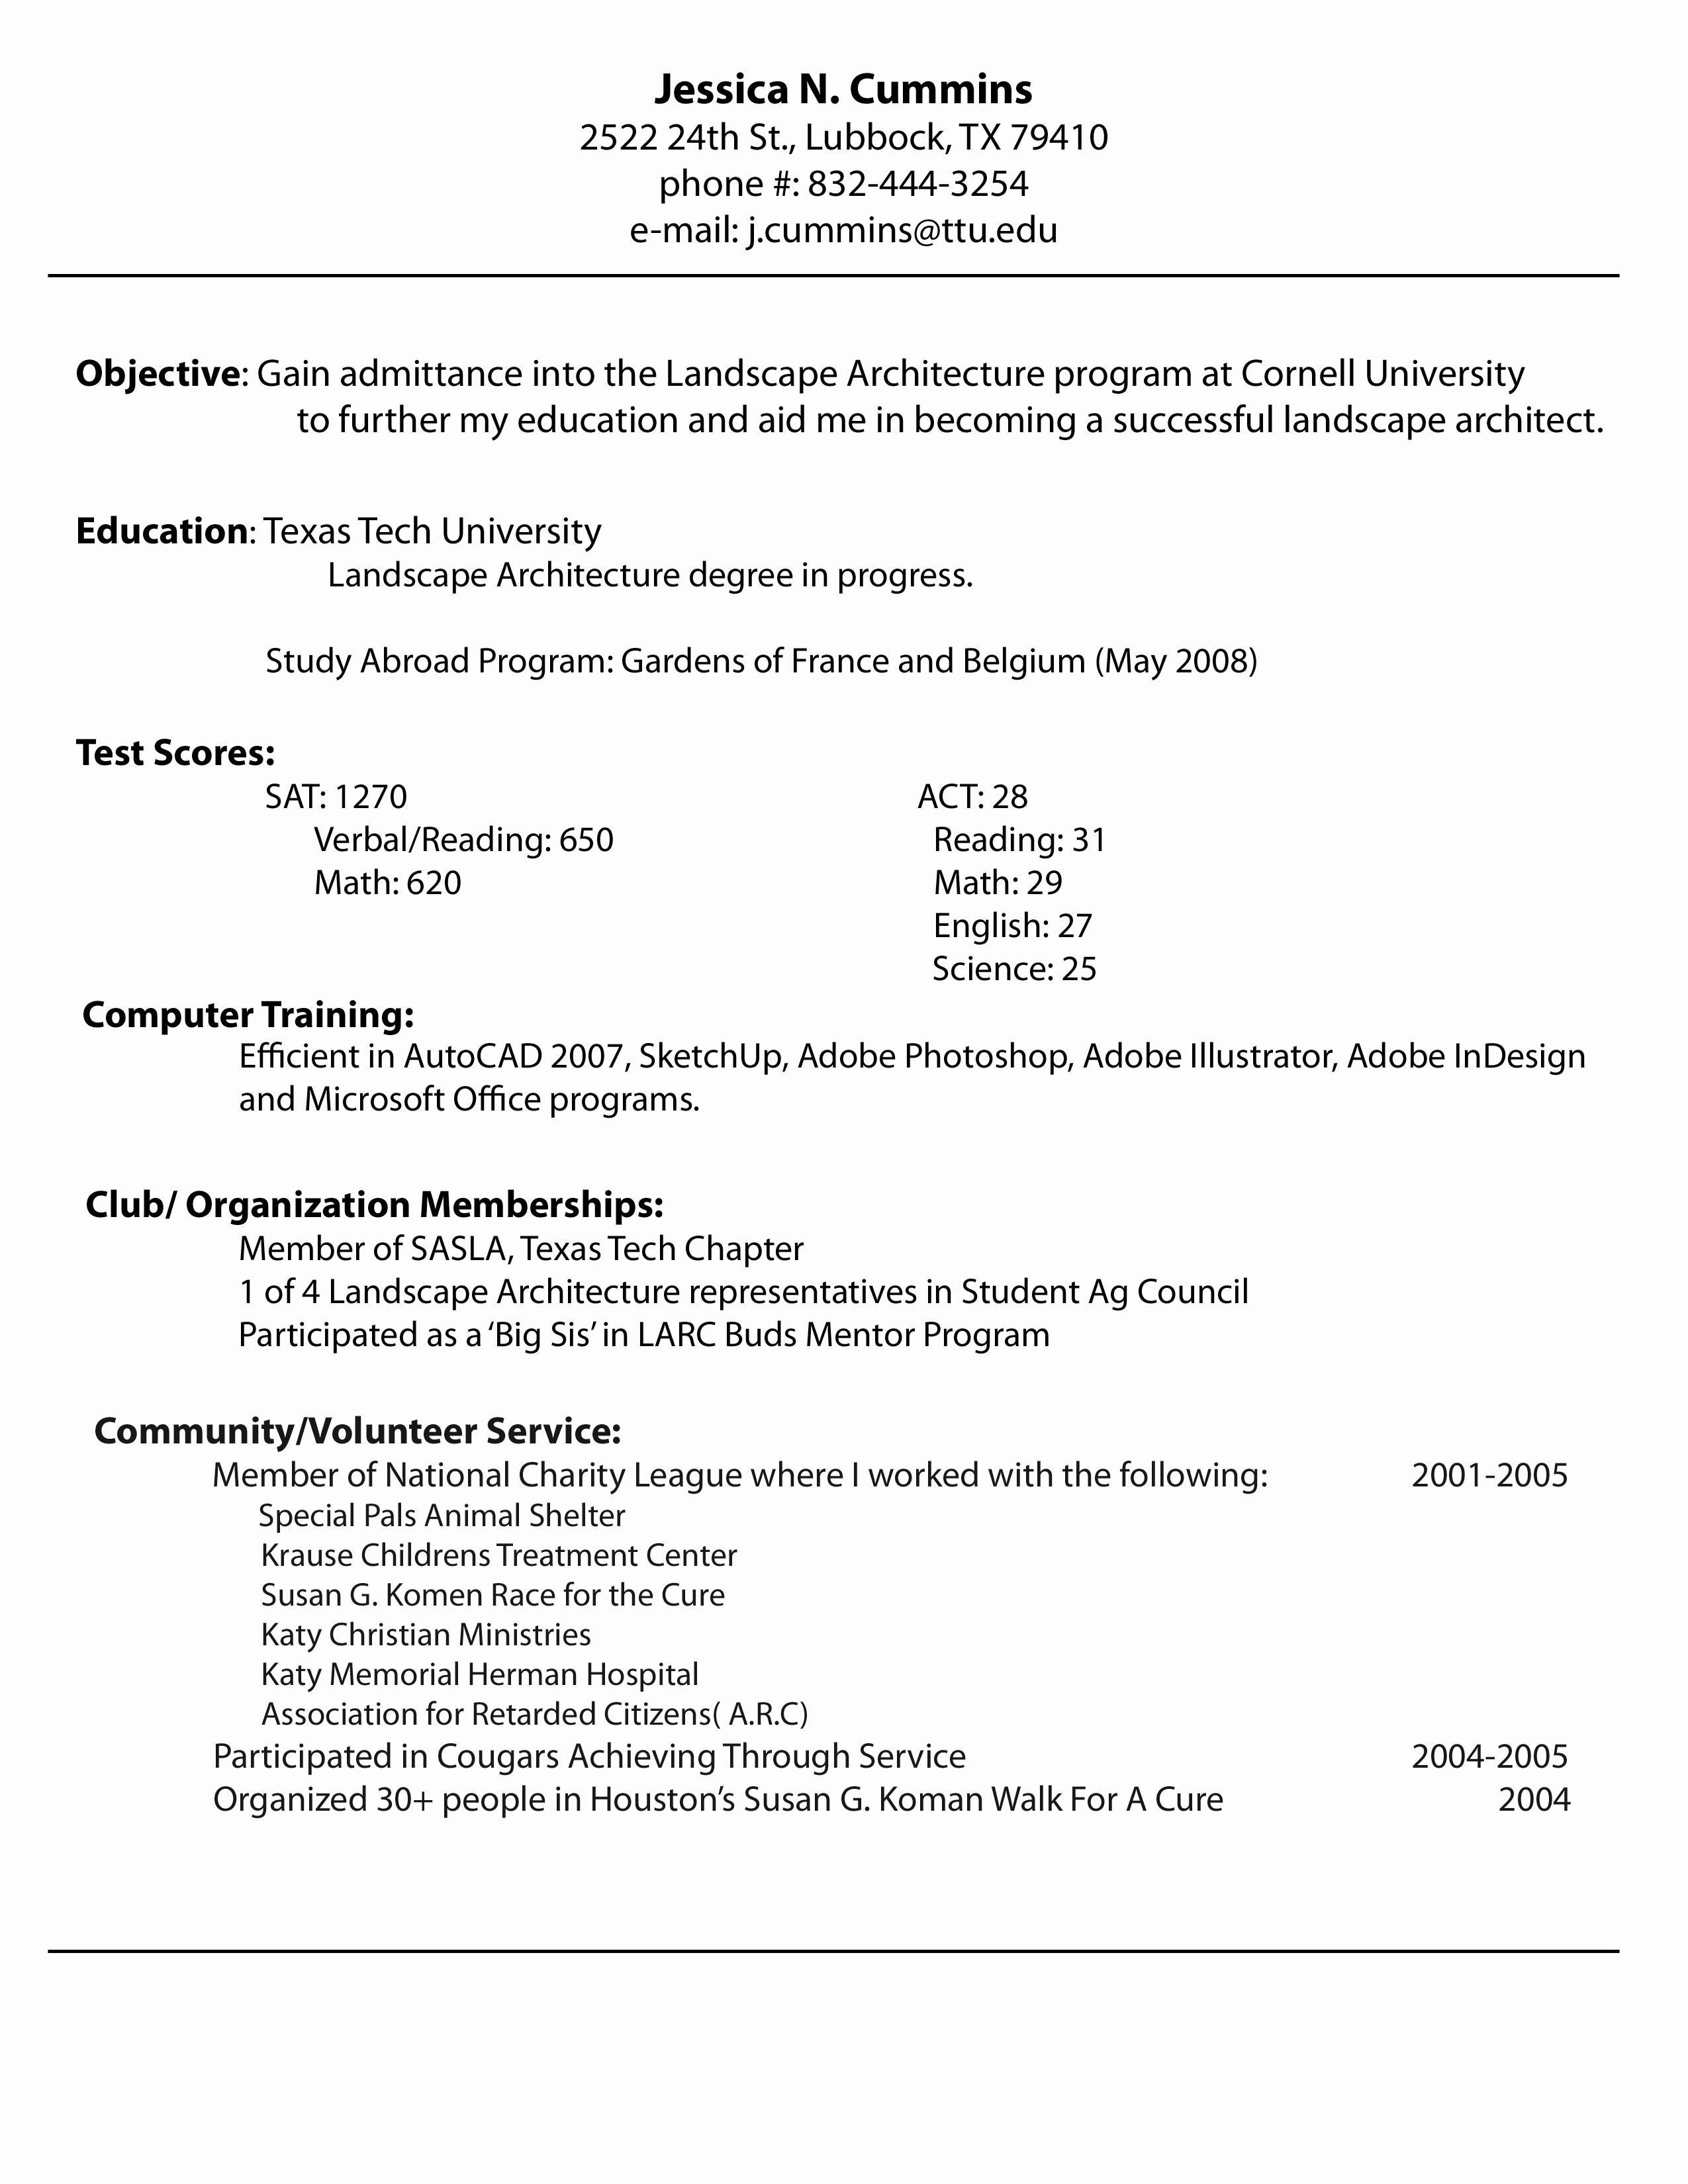 Sample Resume Xls Format Resume Format Cover Letter For Resume Curriculum Vitae Examples How To Make Resume